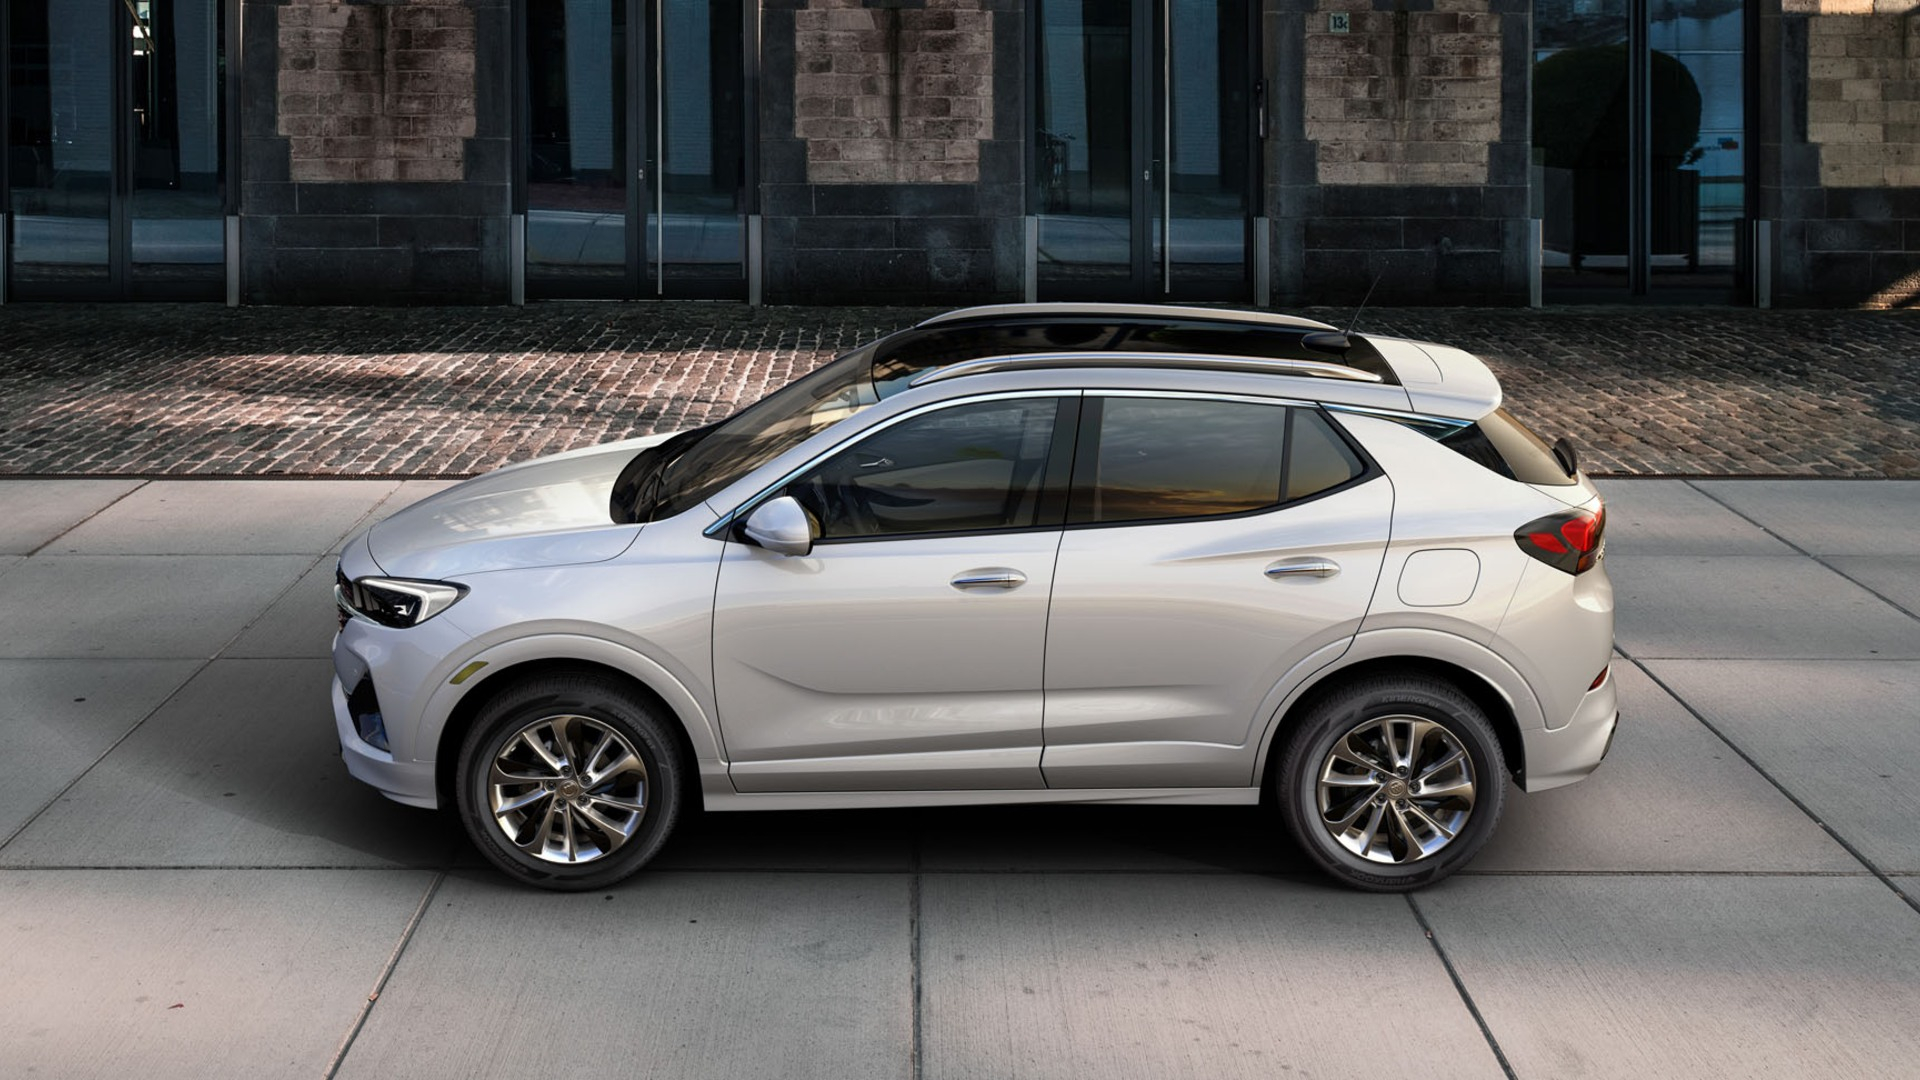 Buick Reveals U.s. Specs For The 2020 Encore Gx New 2022 Buick Encore Gx Safety Rating, Specifications, Tire Size